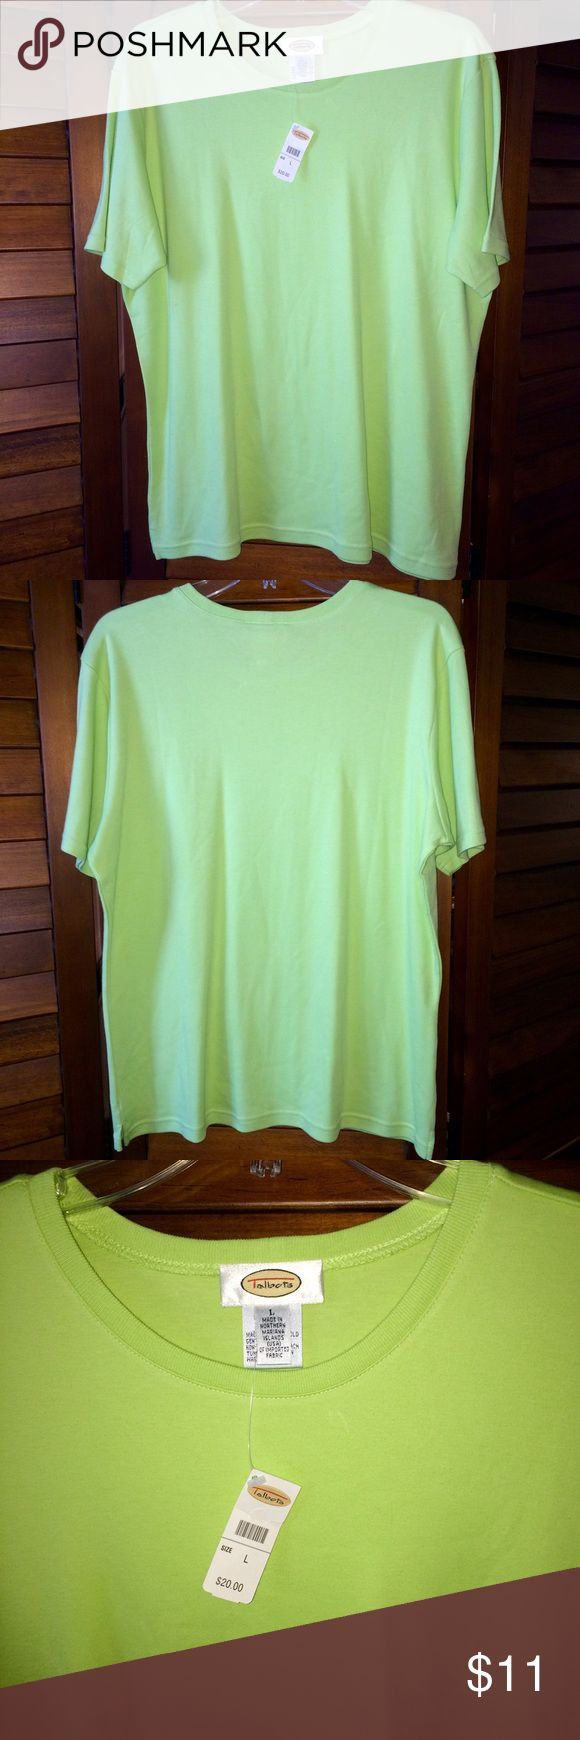 Talbots Soft Lime Green Round Top Large NWT Talbots Soft Lime Green Round Neck Cotton Top Shirt Large Short Sleeve NWT Talbots Tops Tees - Short Sleeve